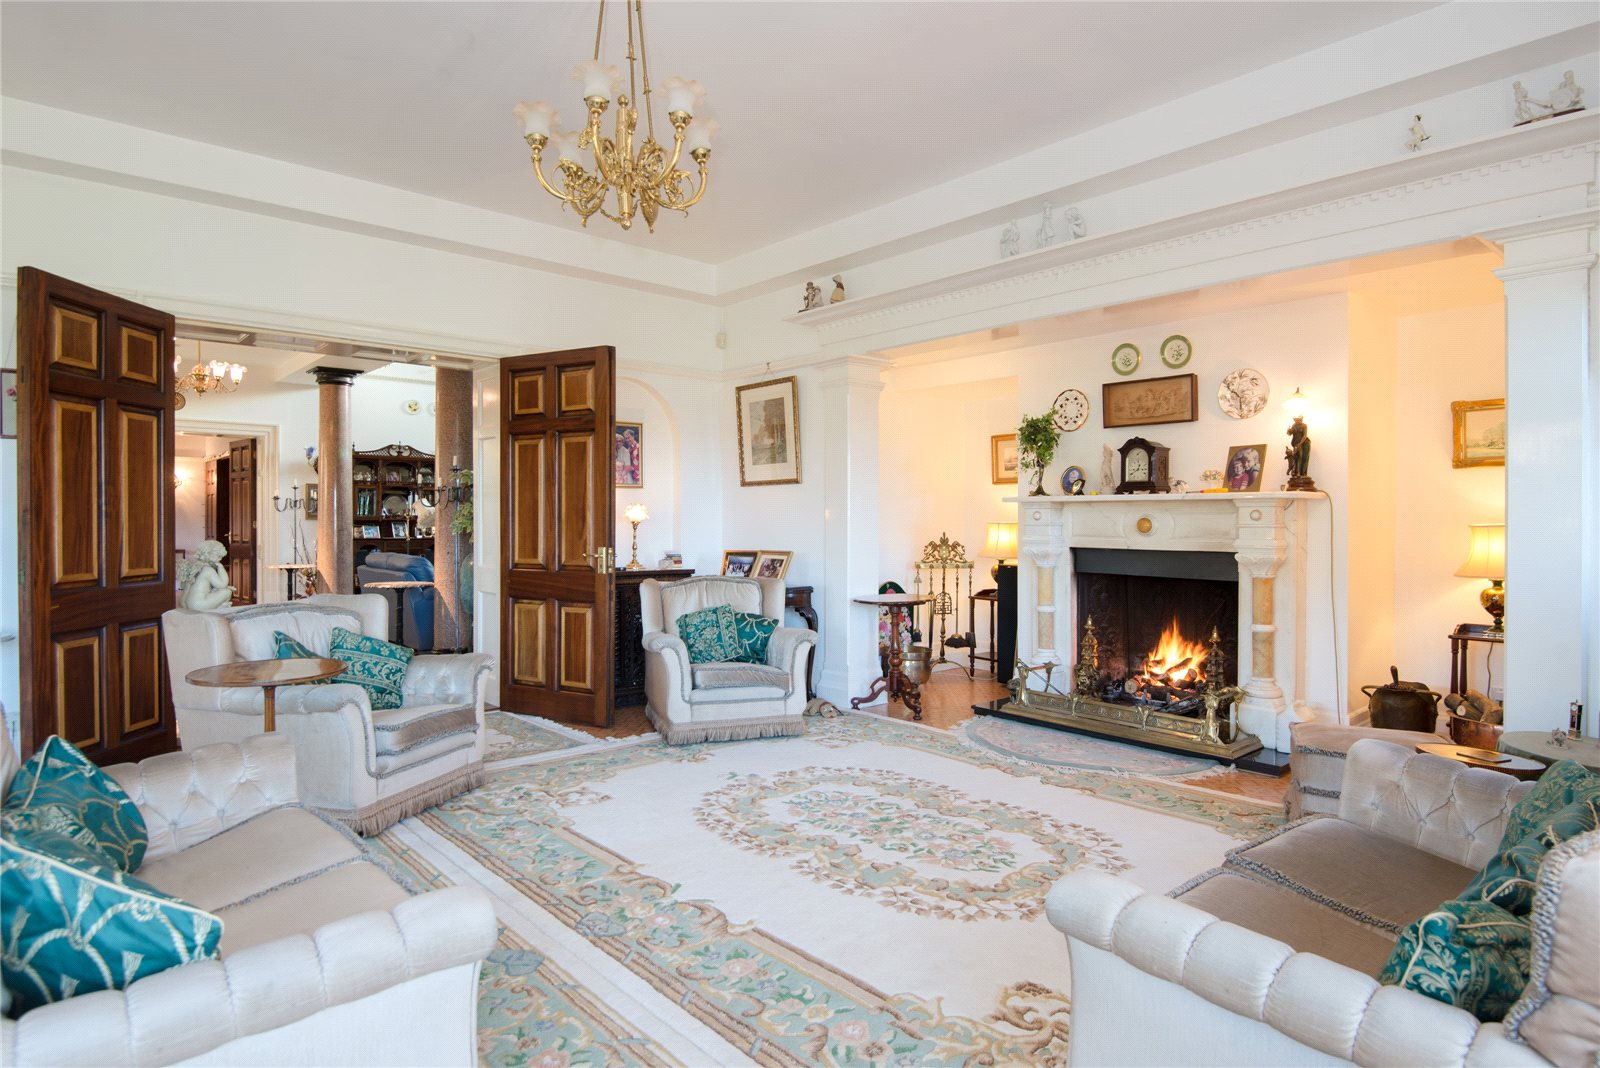 Additional photo for property listing at Main Drive, Gerrards Cross, Buckinghamshire, SL9 Gerrards Cross, Ingiltere